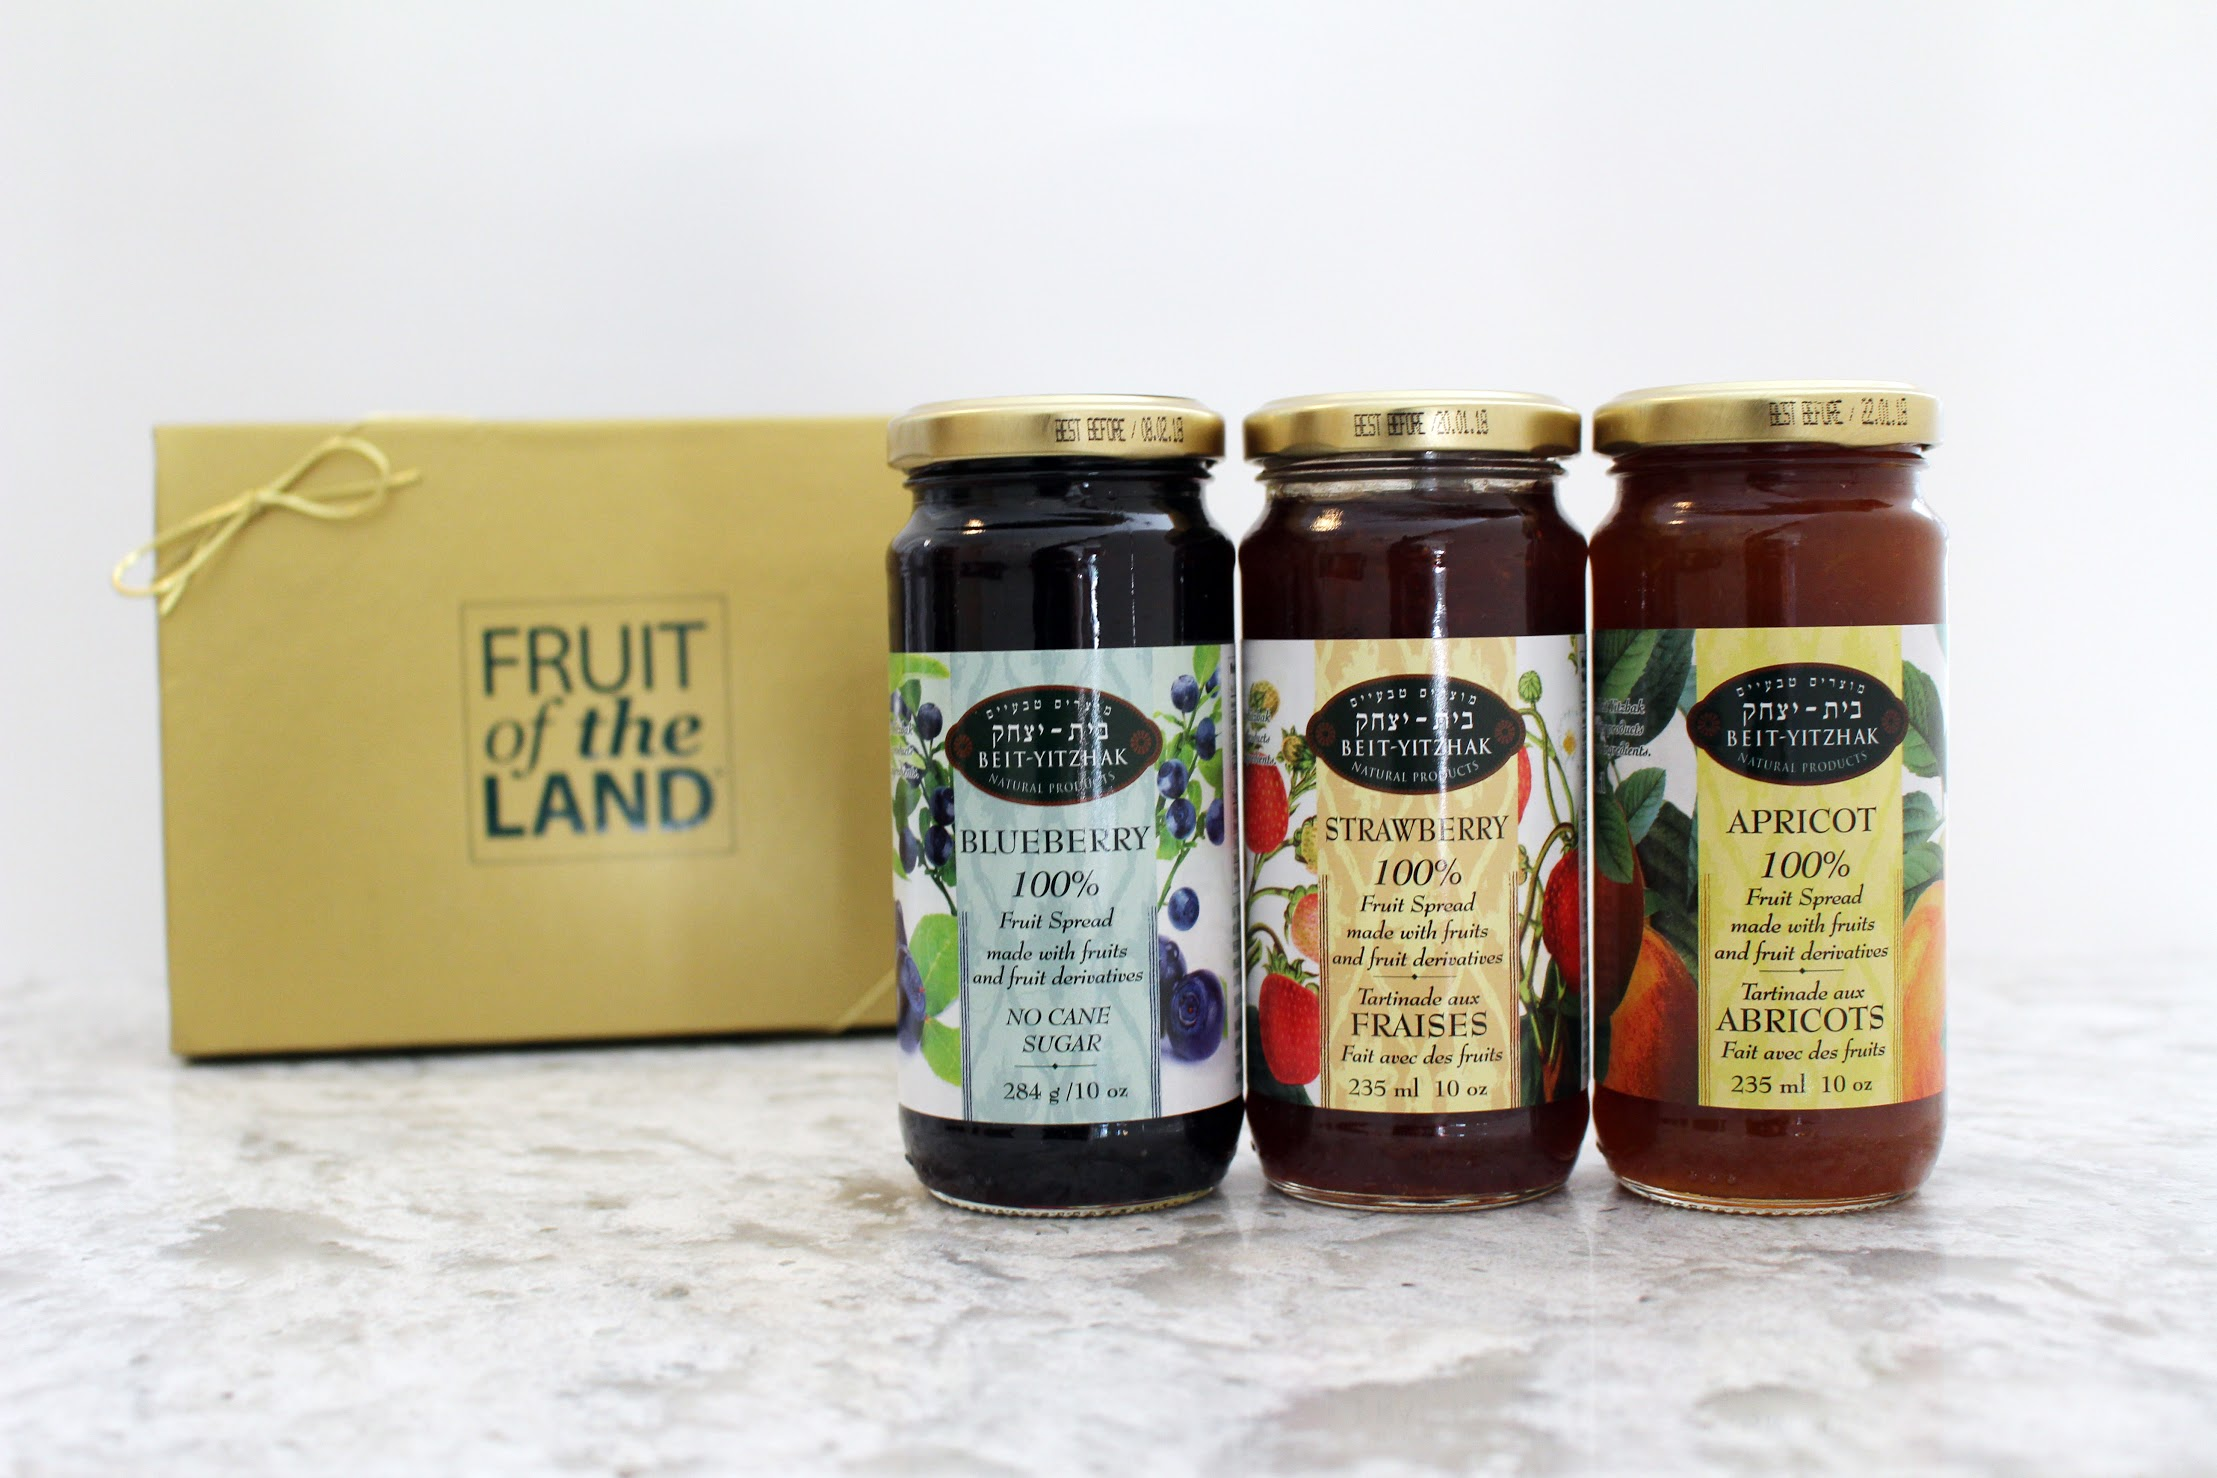 Beit Yitzhak 100% Fruit Spread Gift Box.jpg